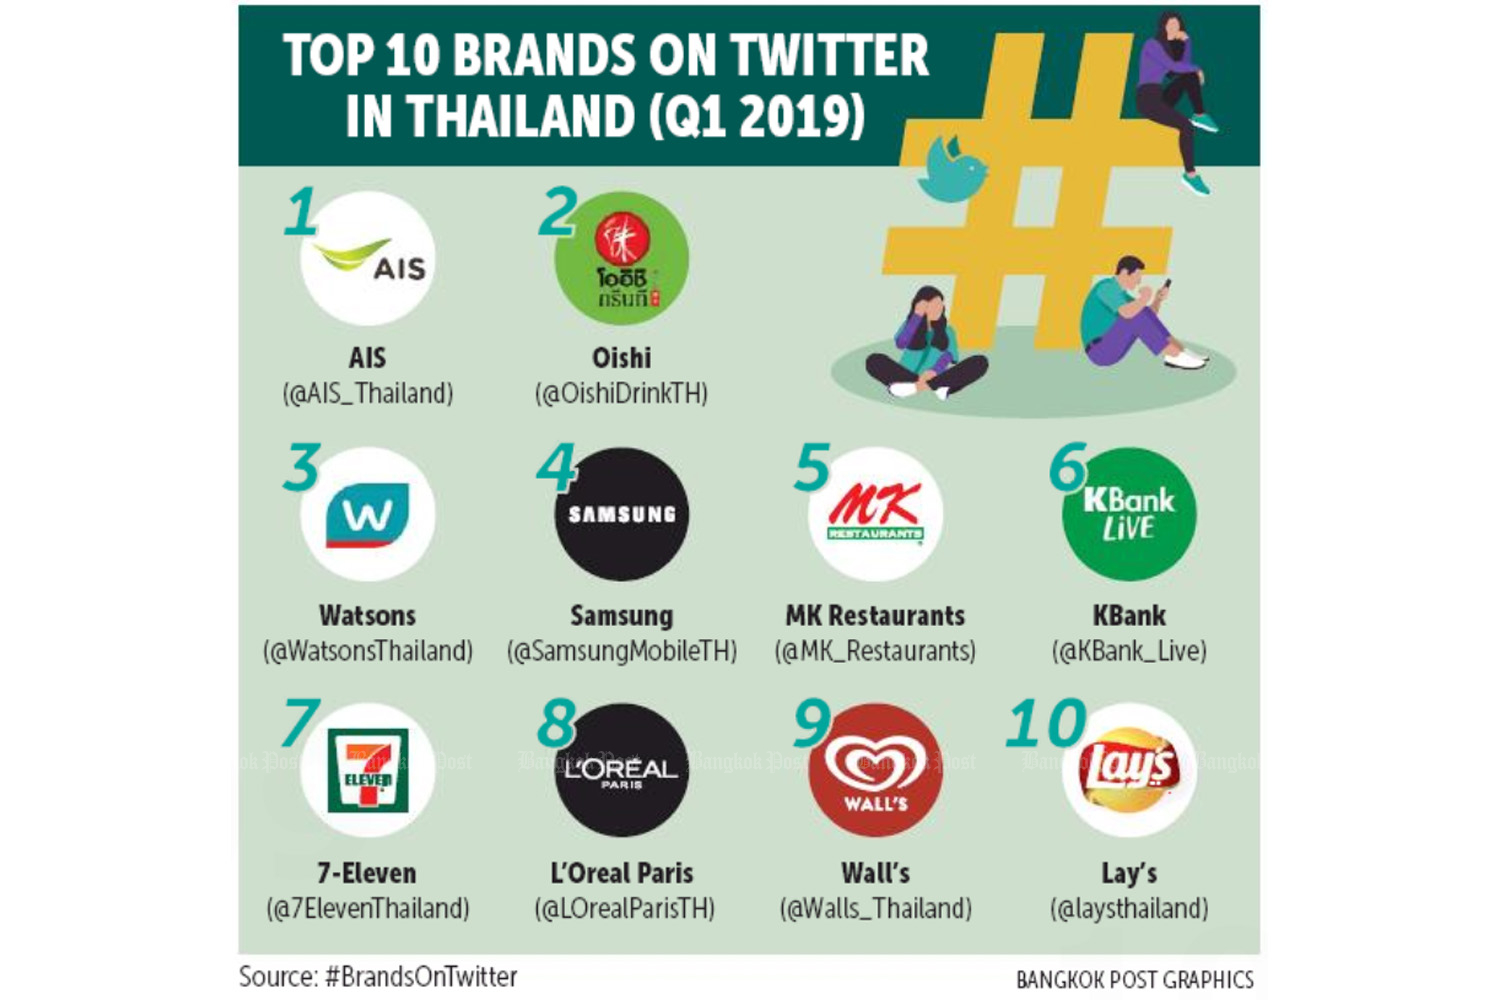 AIS leads brands in Twitter engagement